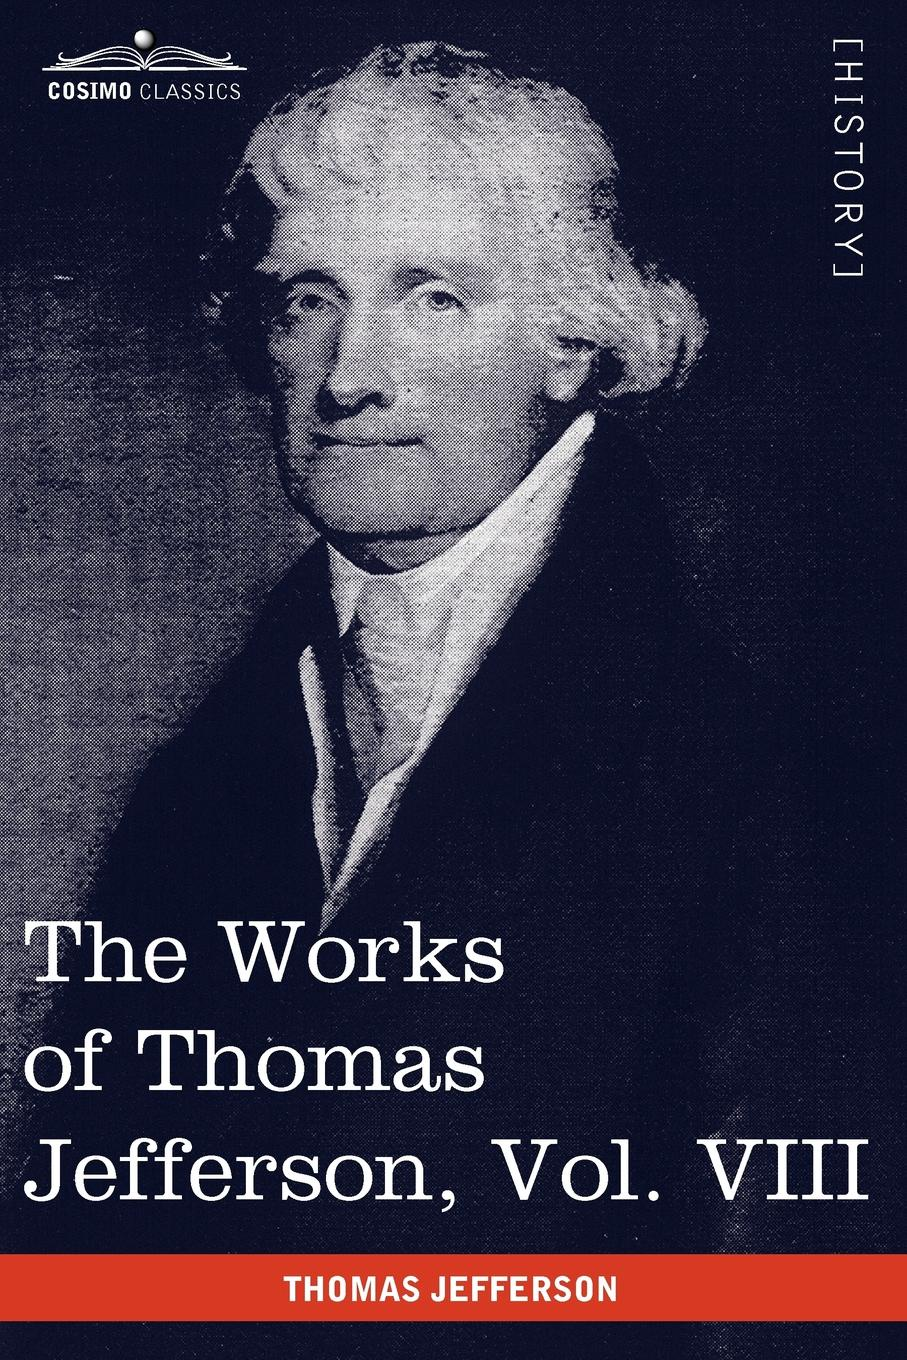 Thomas Jefferson The Works of Thomas Jefferson, Vol. VIII (in 12 Volumes). Correspondence 1793-1798 genet edmond charles war letters of edmond genet the first american aviator killed flying the stars and stripes